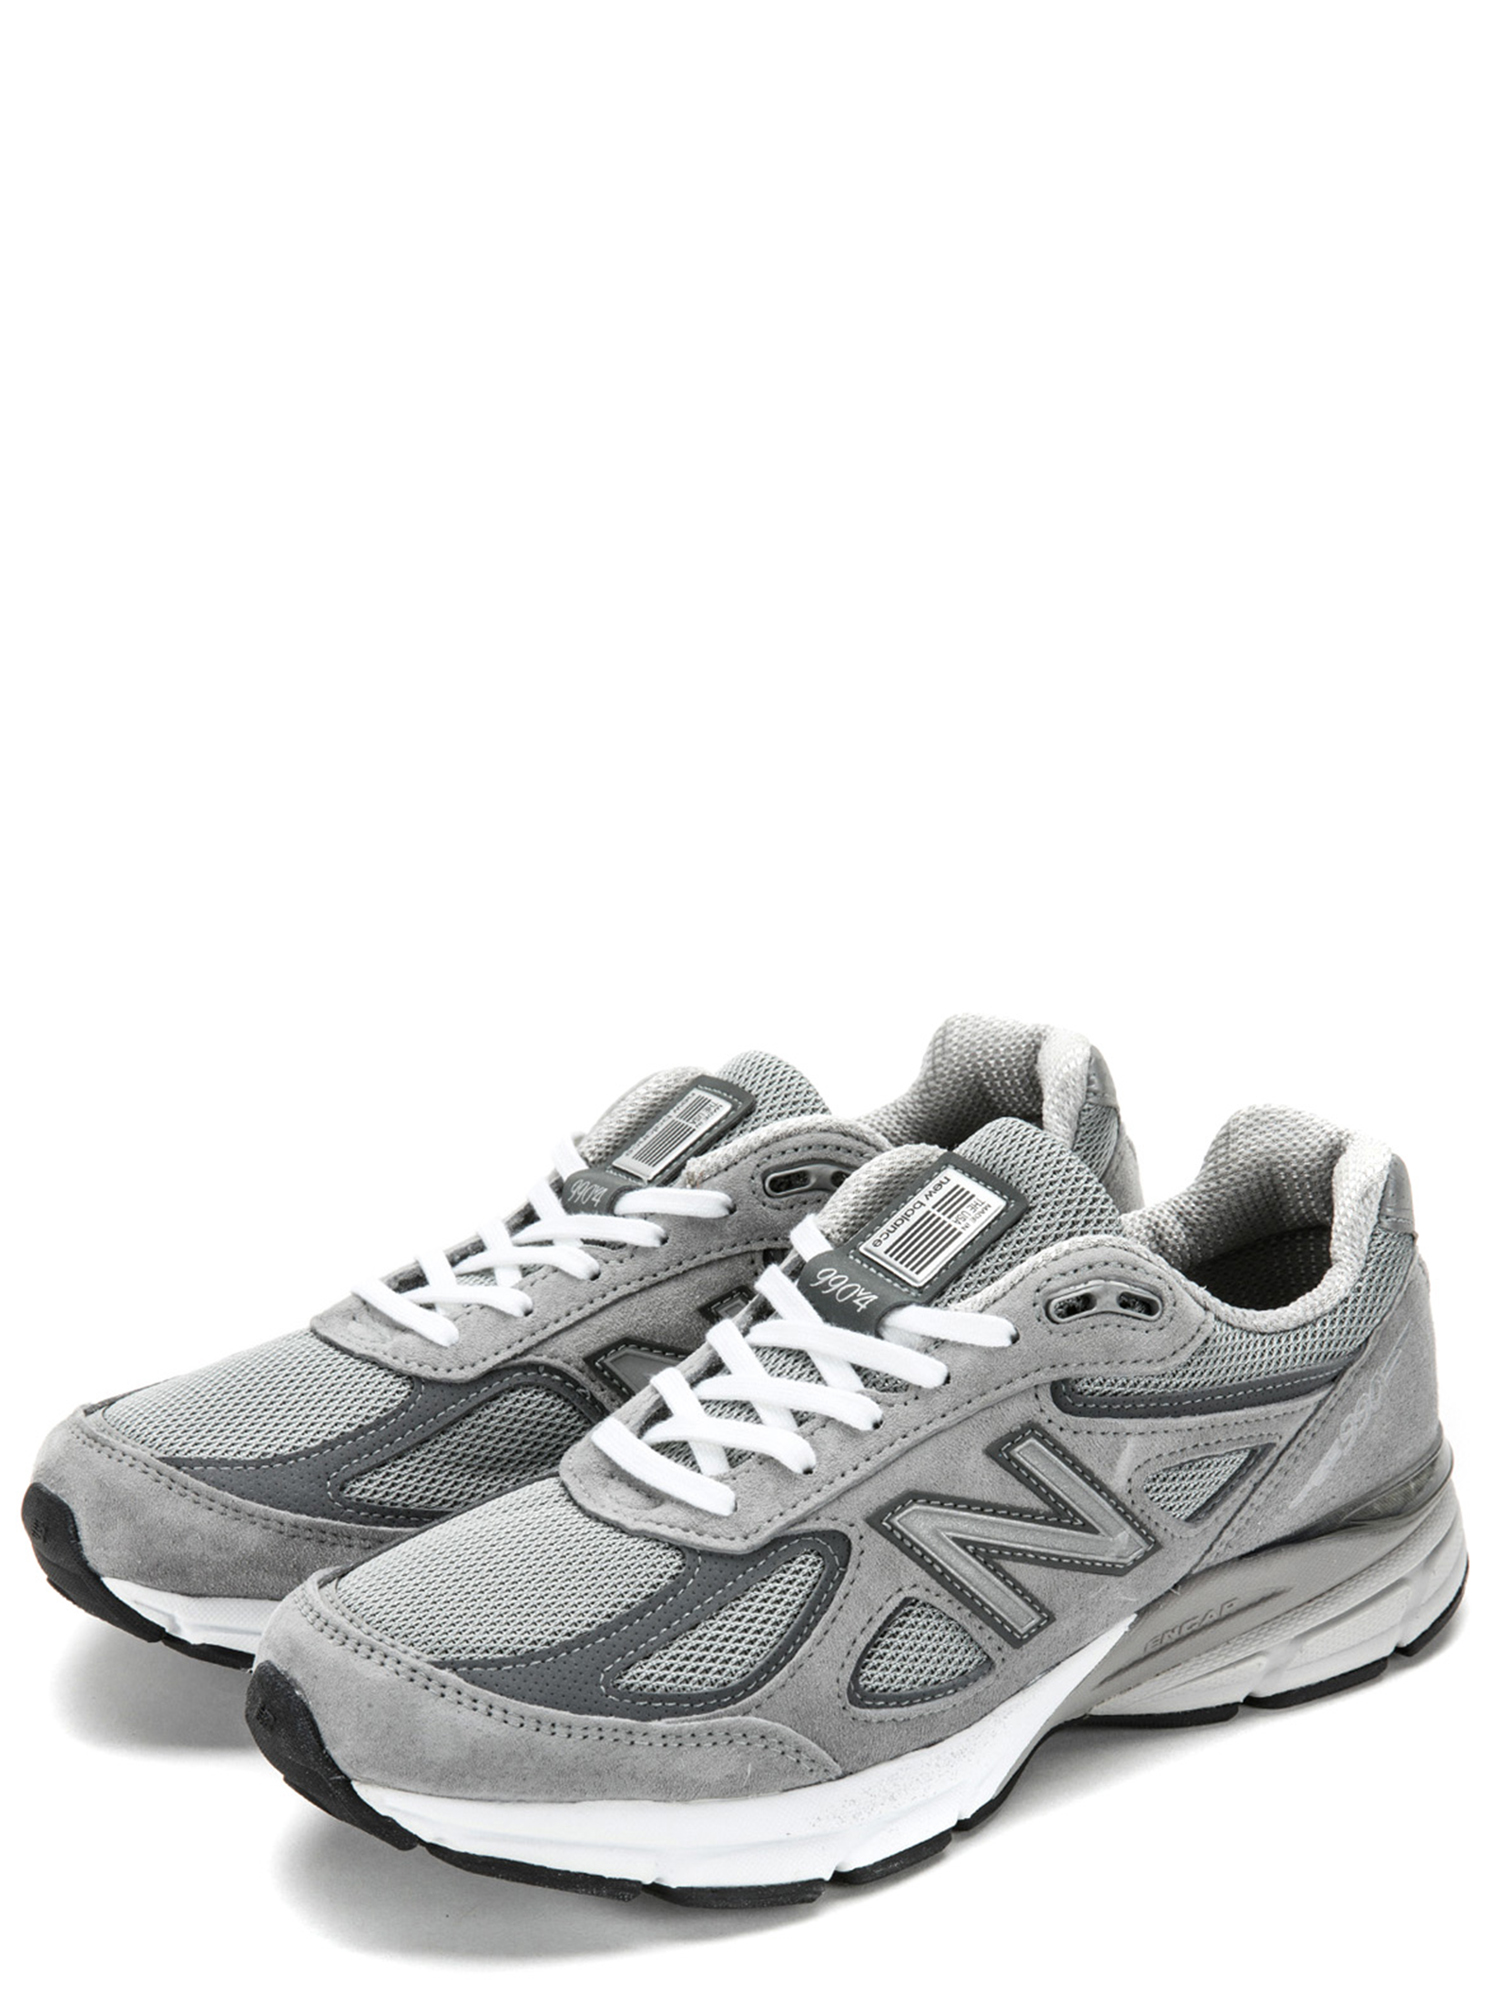 best authentic 06979 dfa35 Details about New Balance Men's 990v4 Sneakers M990GL4 Grey w/ Castlerock